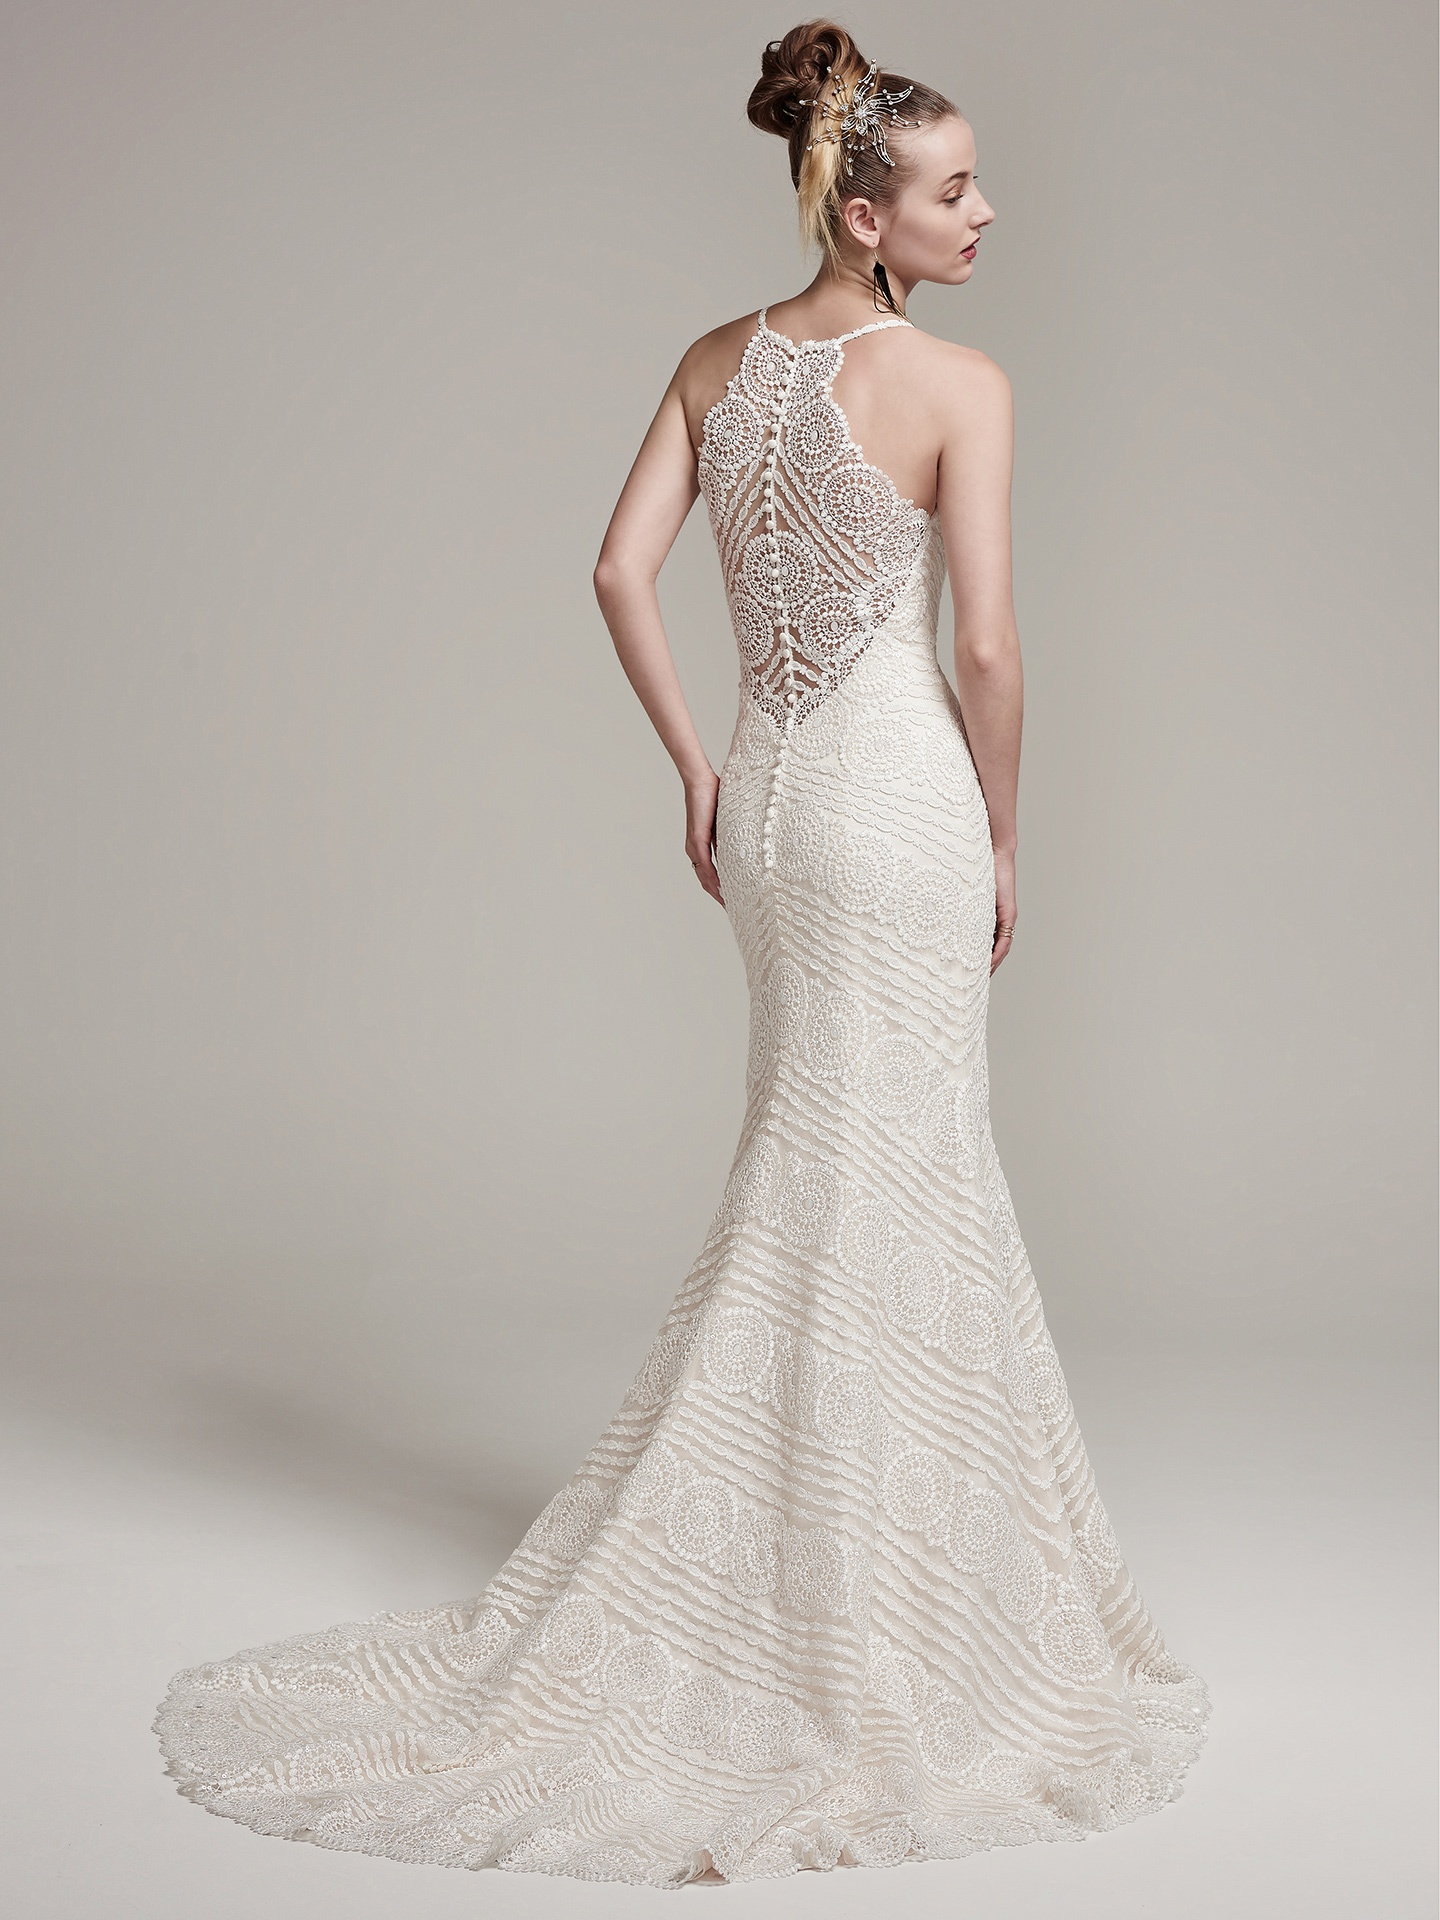 Bexley by Sottero and Midgley. Modern and romantic, this lace sheath wedding dress with spaghetti straps and V-neckline highlighted with opal beads is unforgettably feminine and chic.